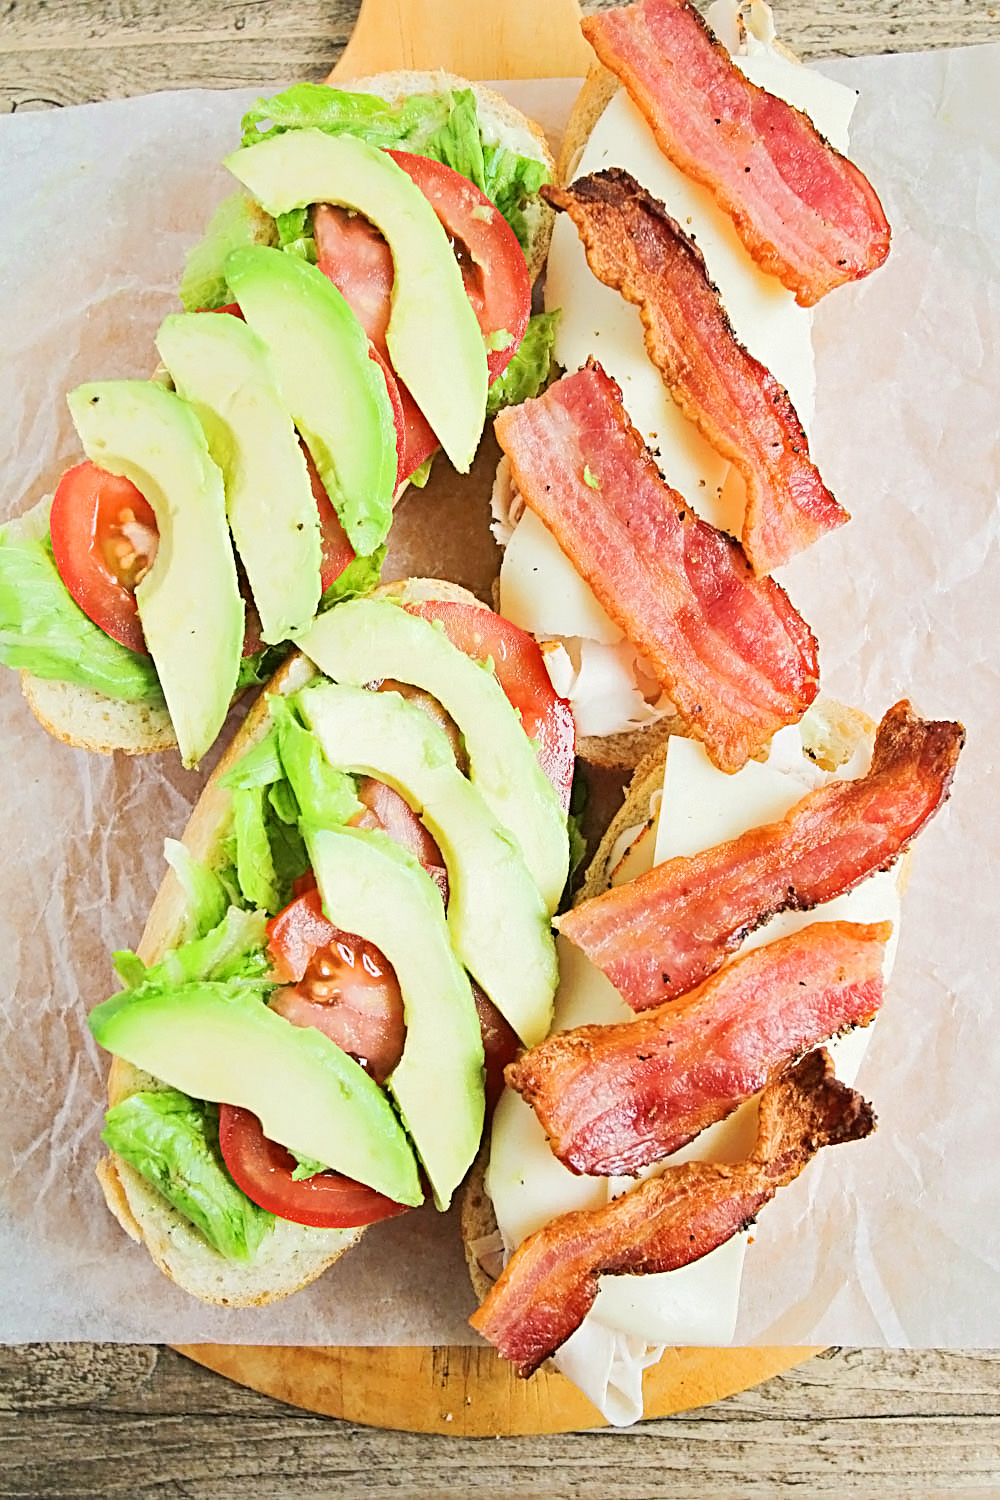 These turkey club picnic sandwiches are the perfect savory lunch for a fun outing!